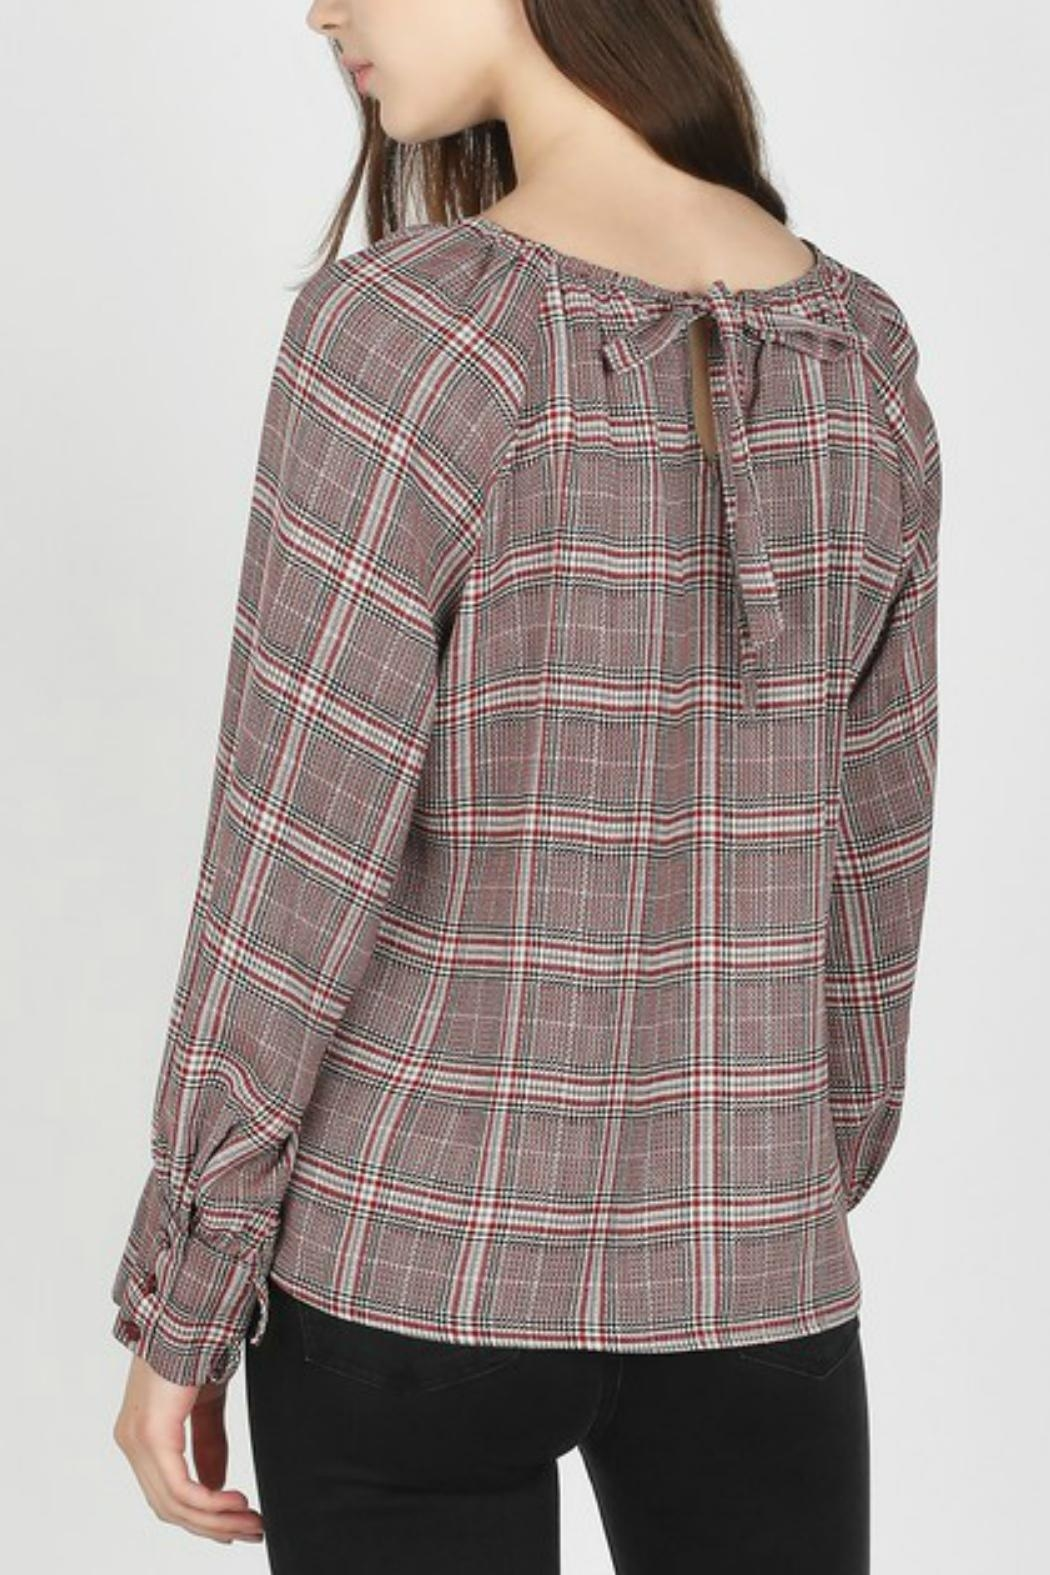 Skies Are Blue Boat-Neck Plaid Top - Front Full Image